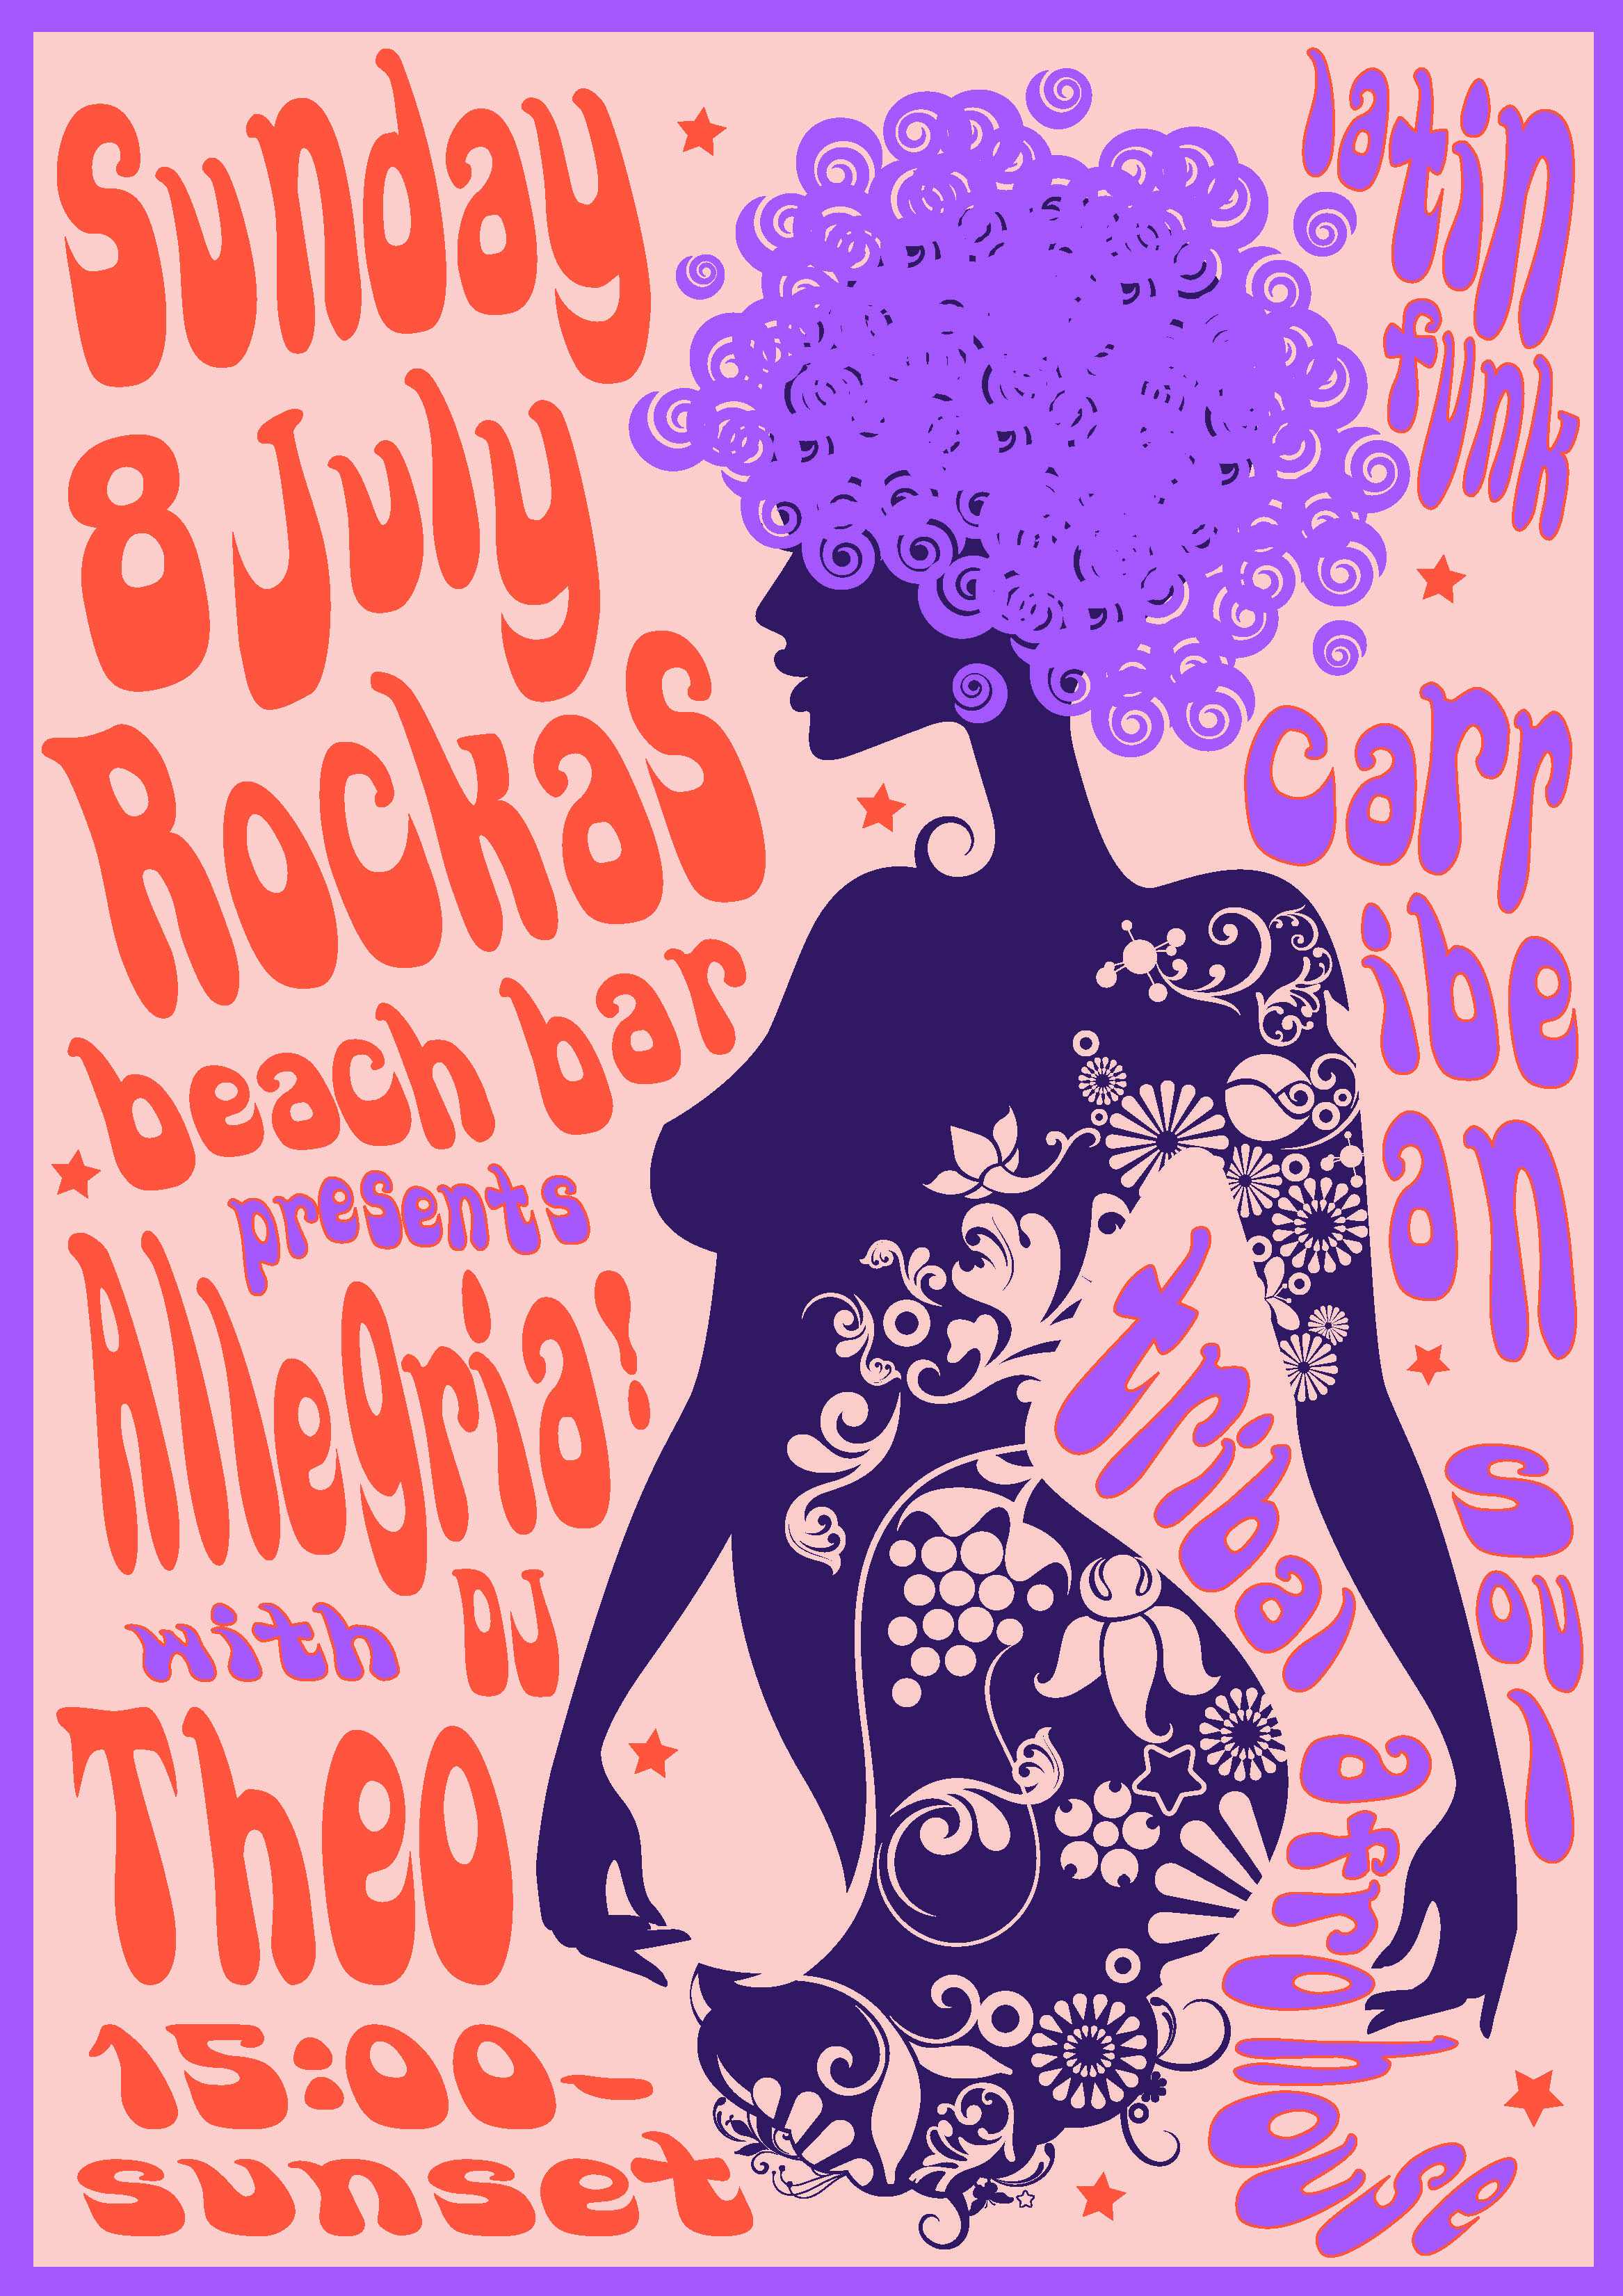 8 JULY POSTER THEO.jpg